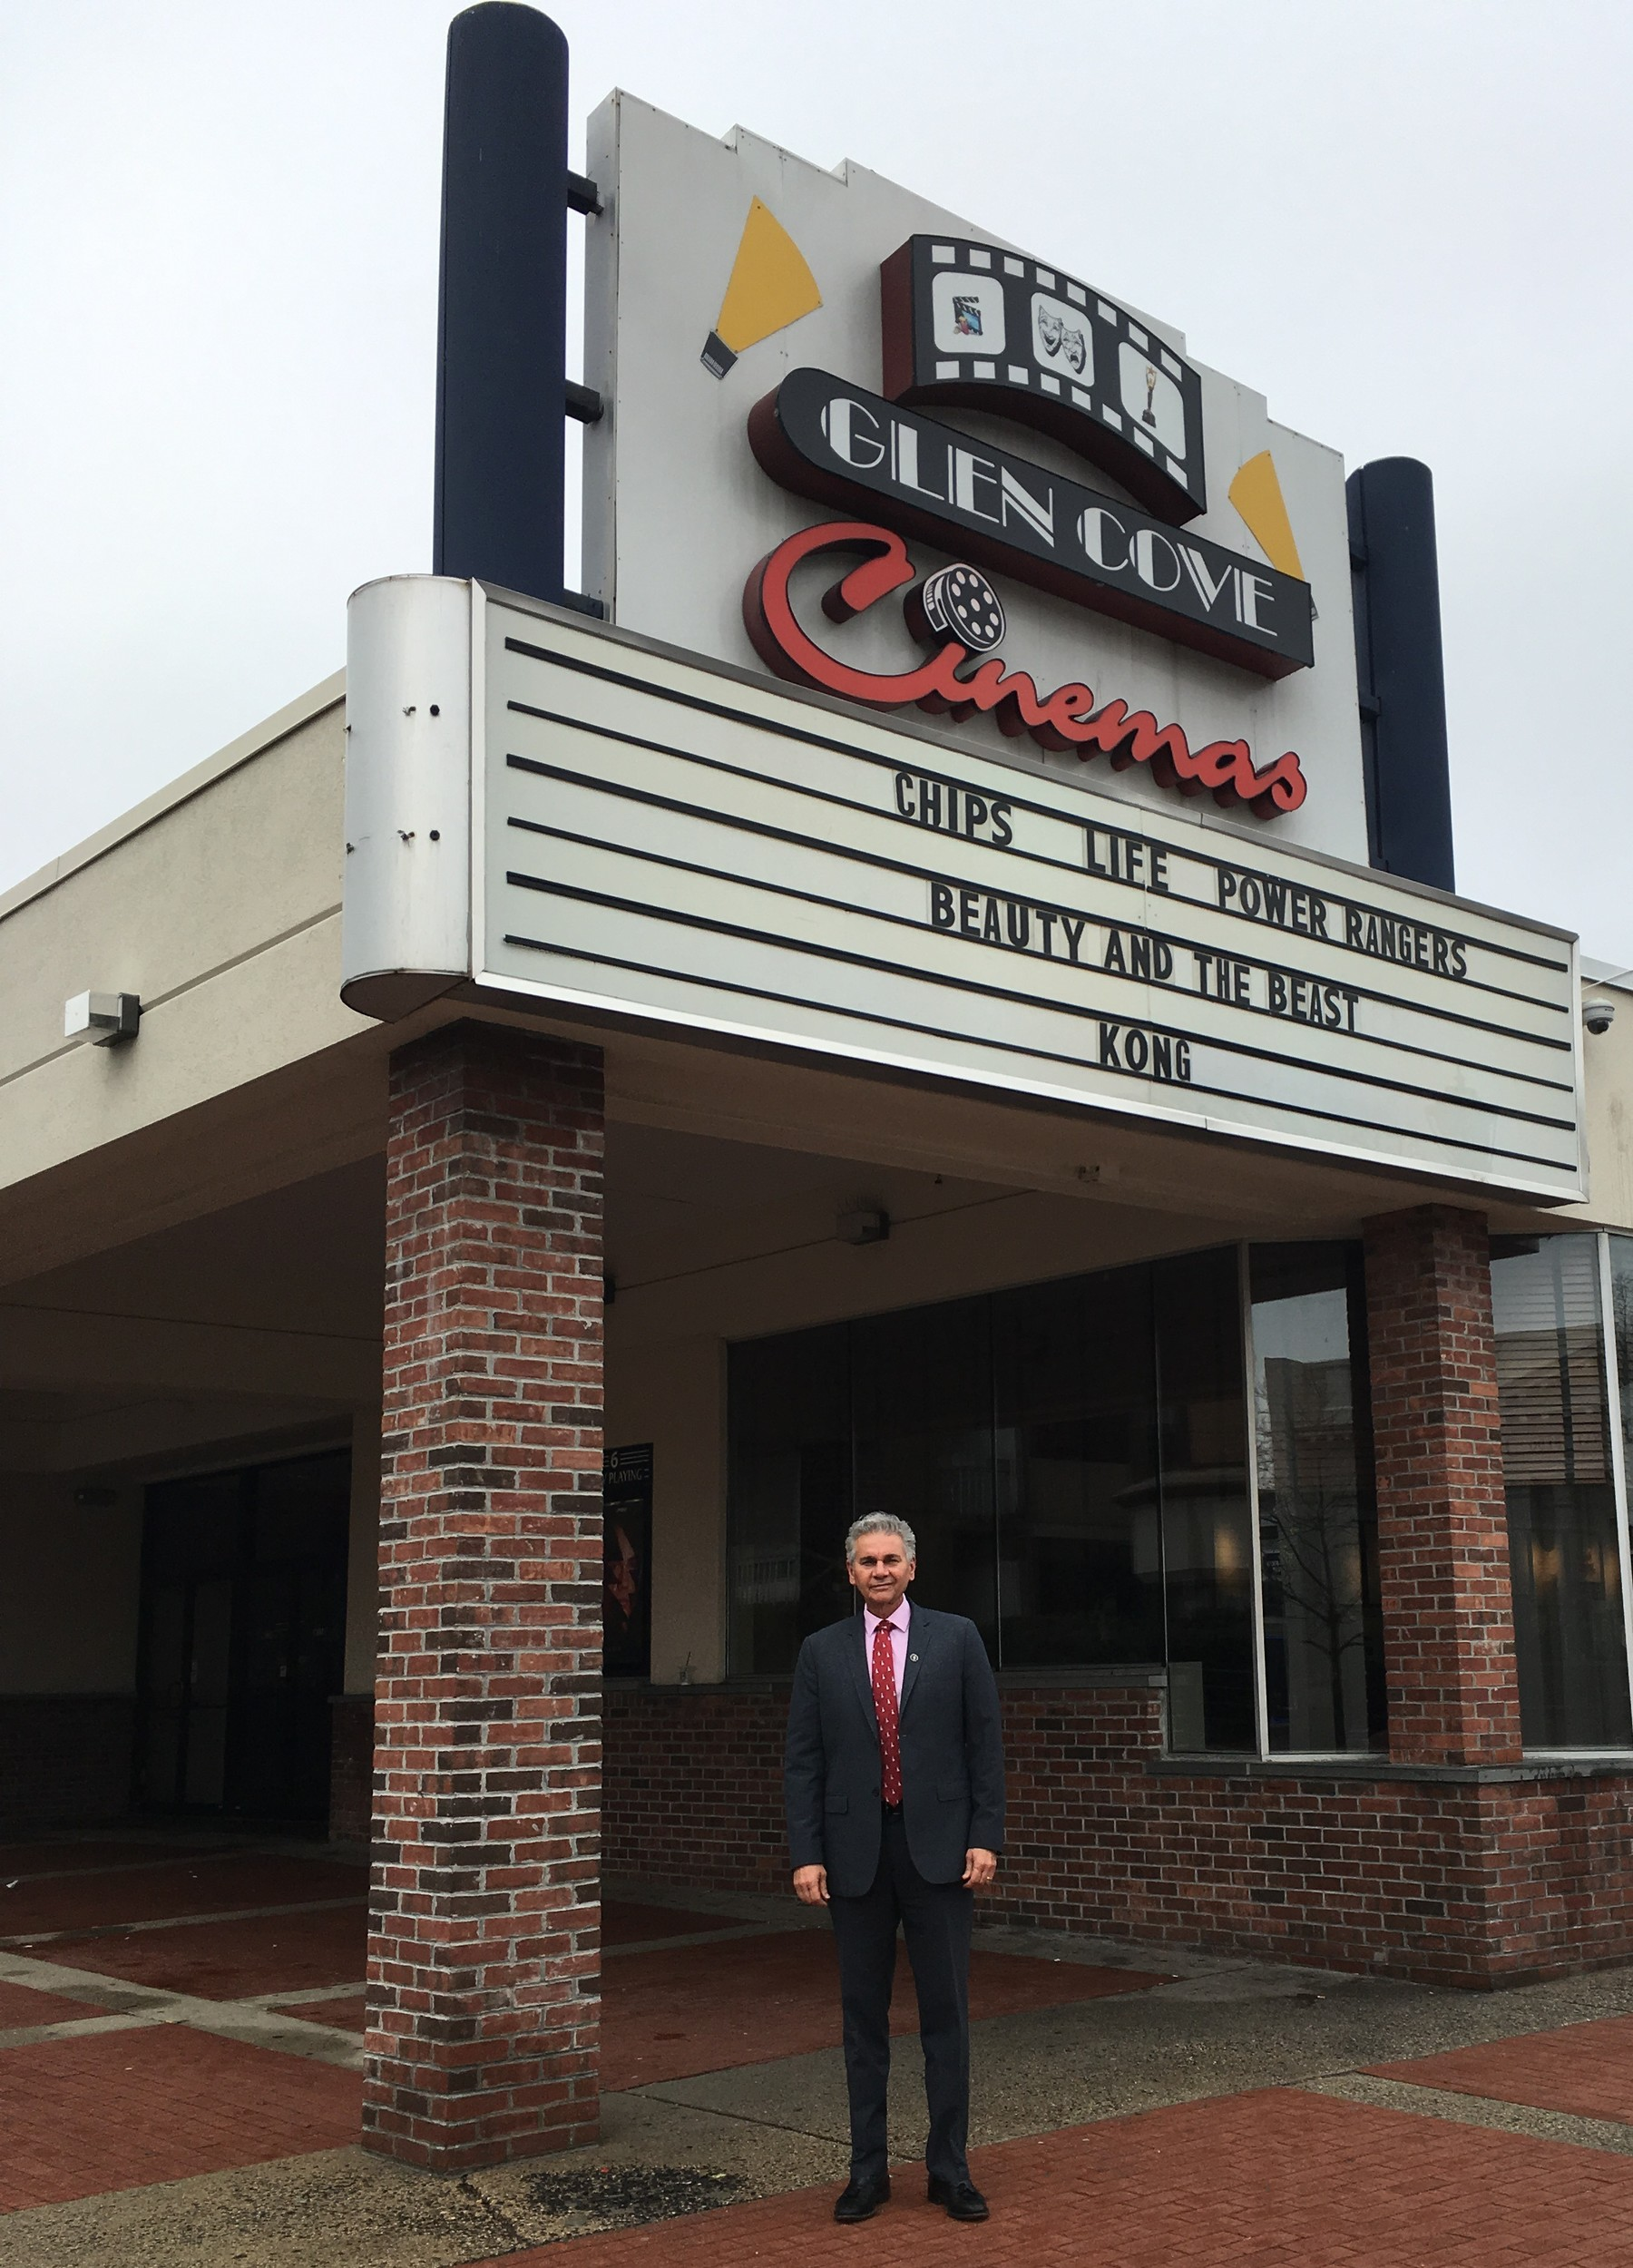 Glen Cove Mayor Reggie Spinello believes a new theater will be beneficial.